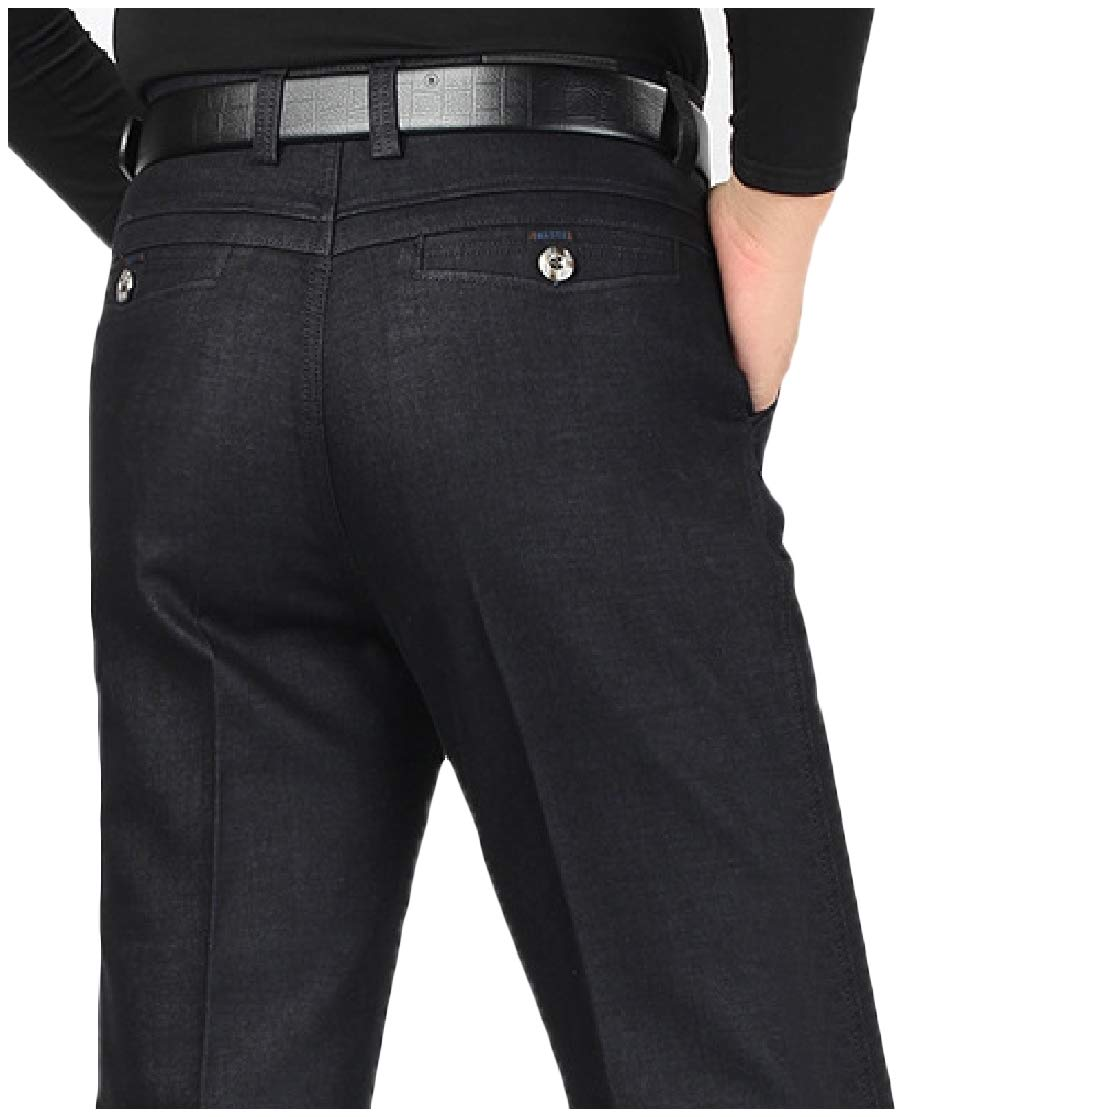 YUNY Mens Straight High Waisted Fall /& Winter Fit Hi-Waist Casual Pants AS7 33